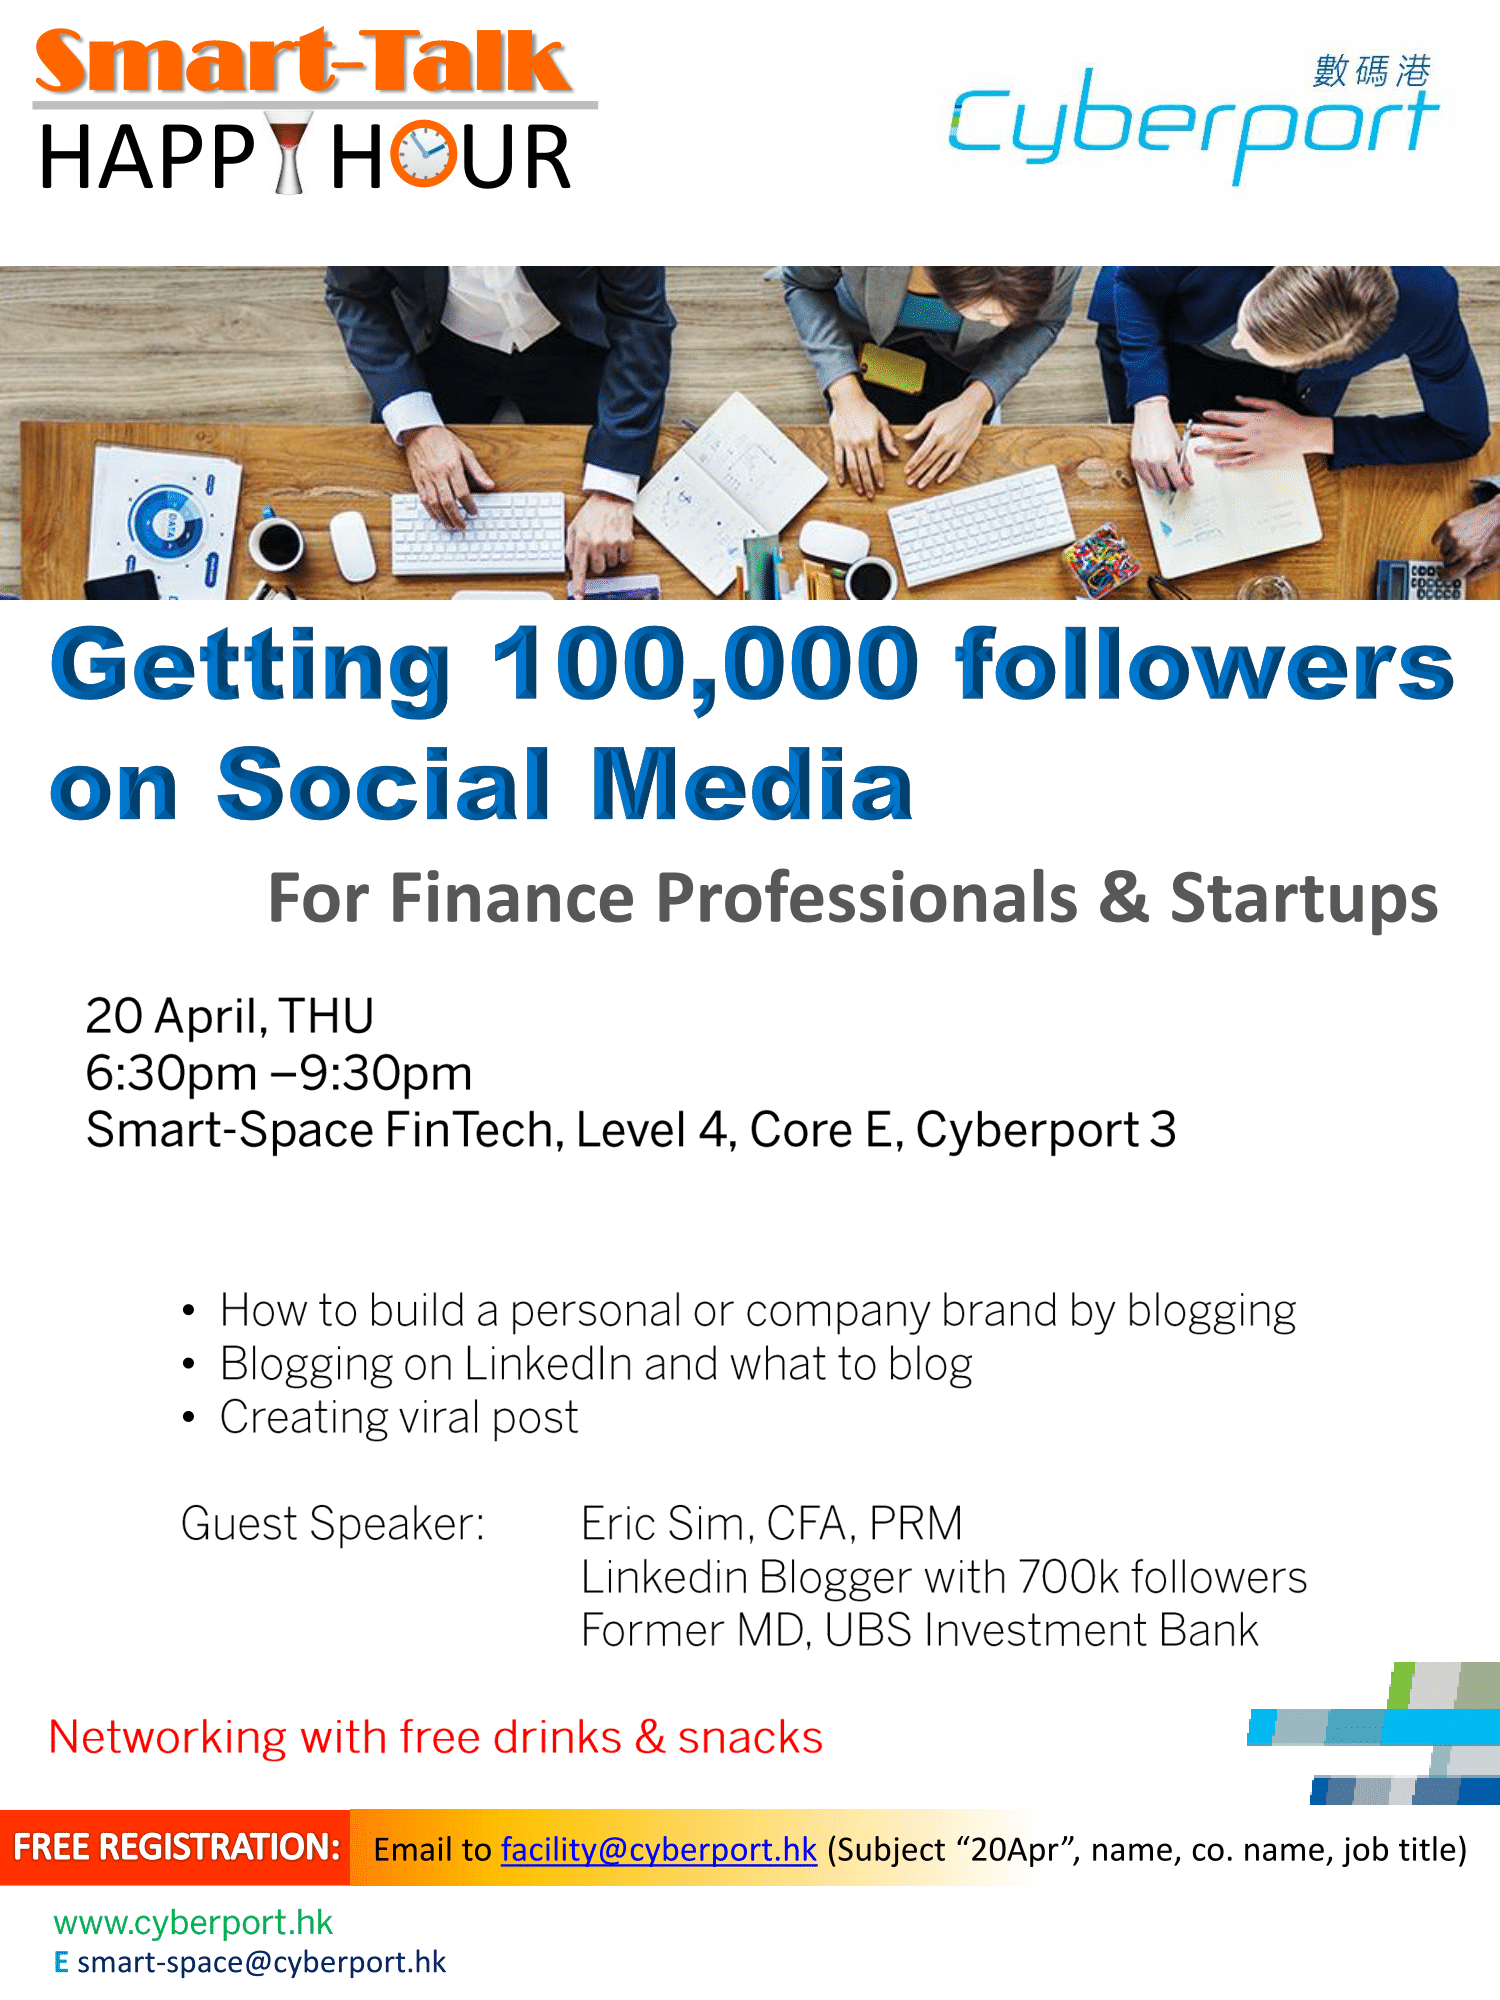 Smart Talk & Happy Hour: Getting 100,000 followers on Social Media